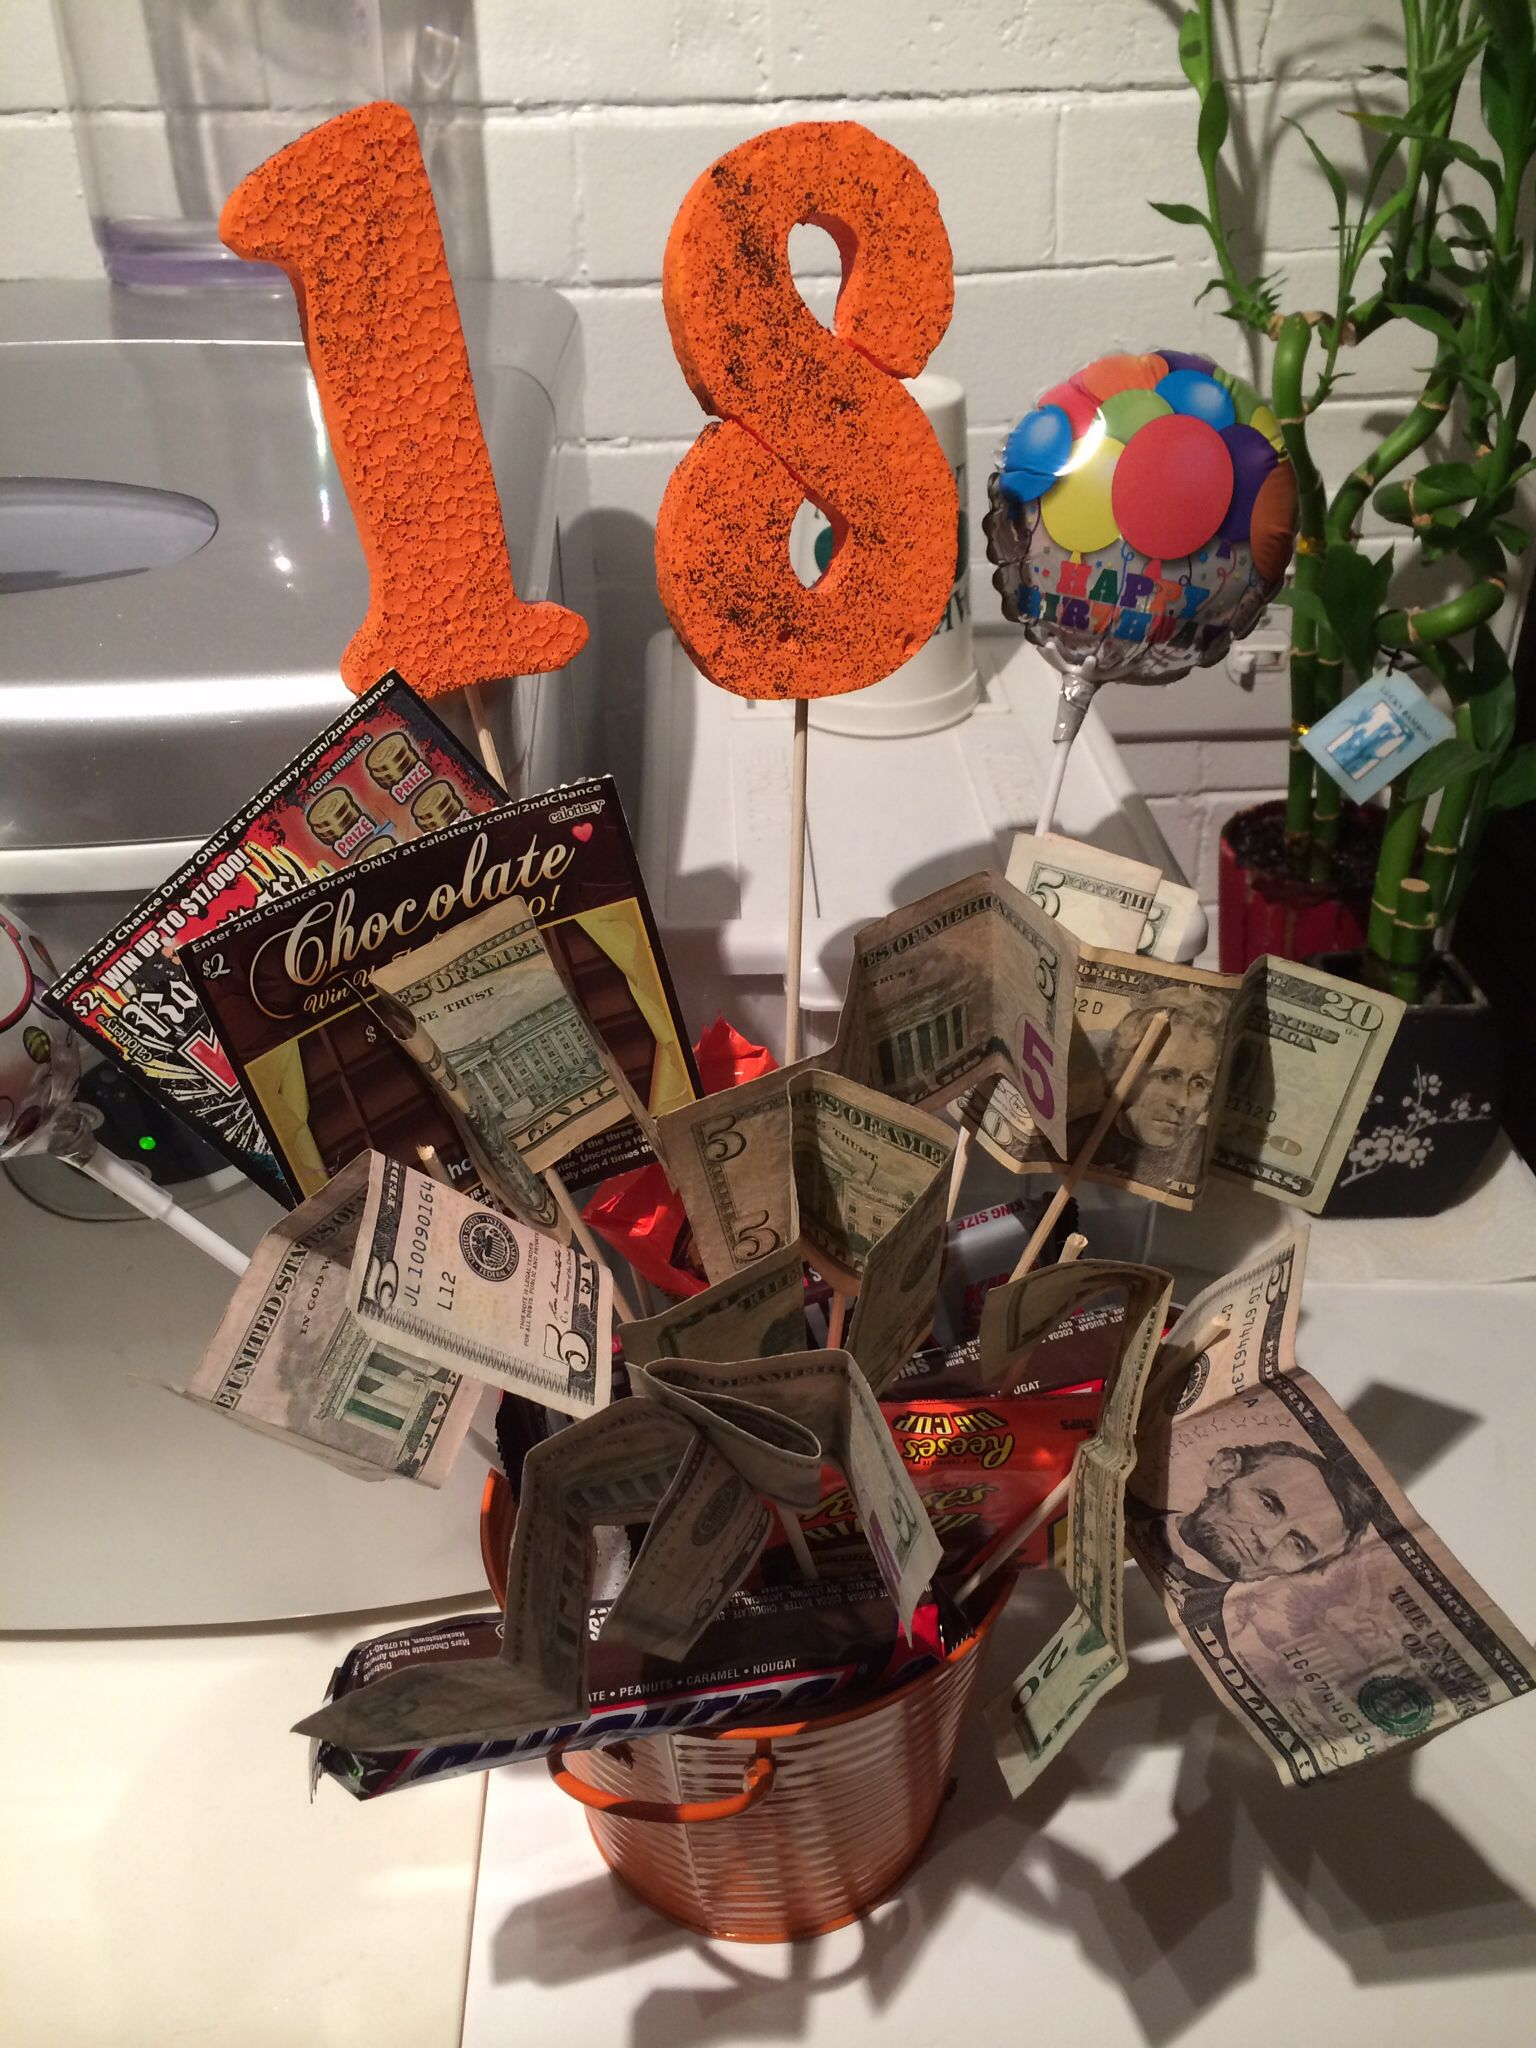 18th Birthday Gift Idea 18th Birthday Gifts Gifts For 18th Birthday 18th Birthday Party